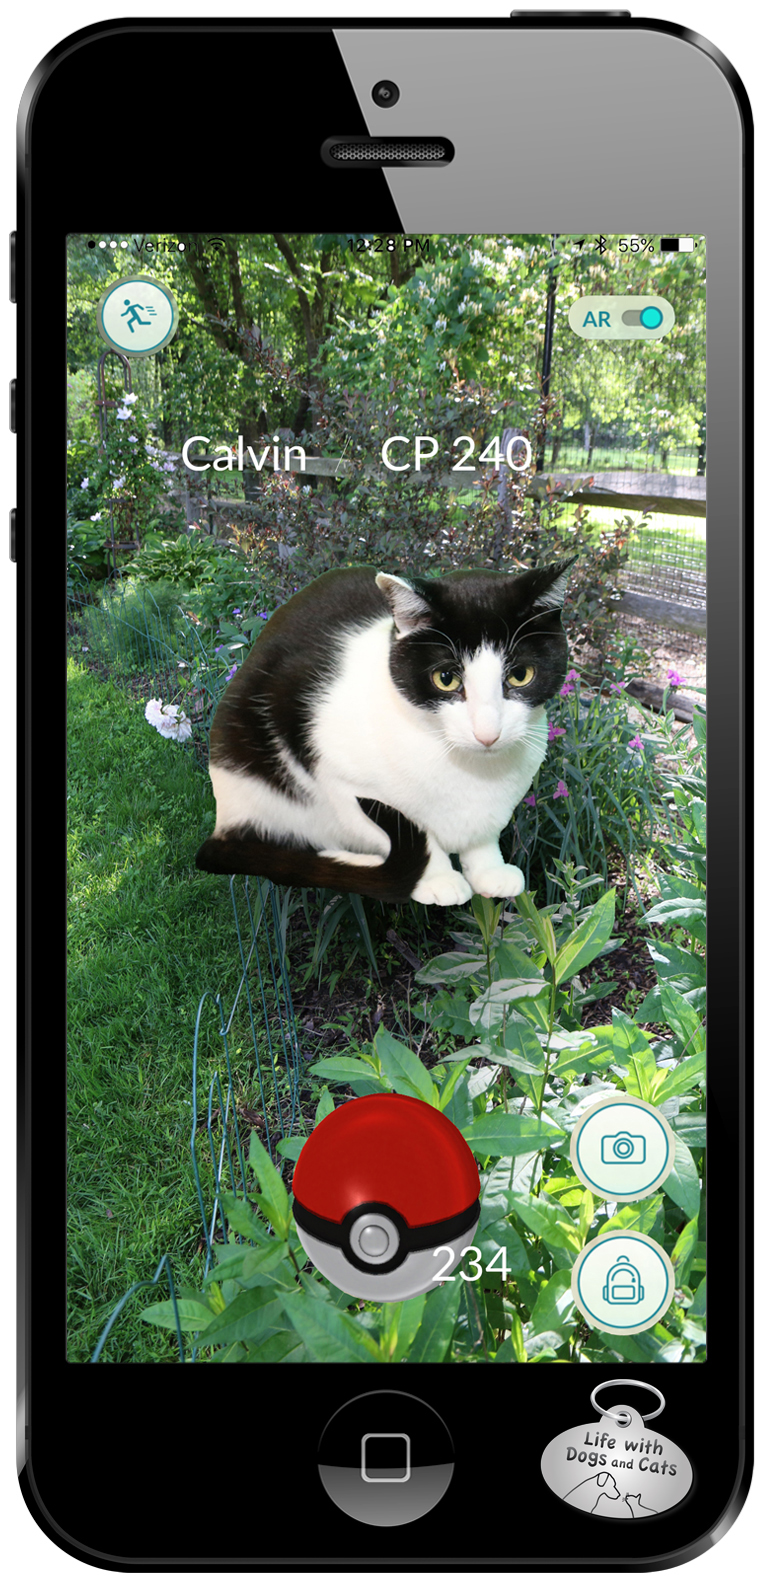 I found another Calvin in the garden. I think cats spawn other cats. #PokemonGo